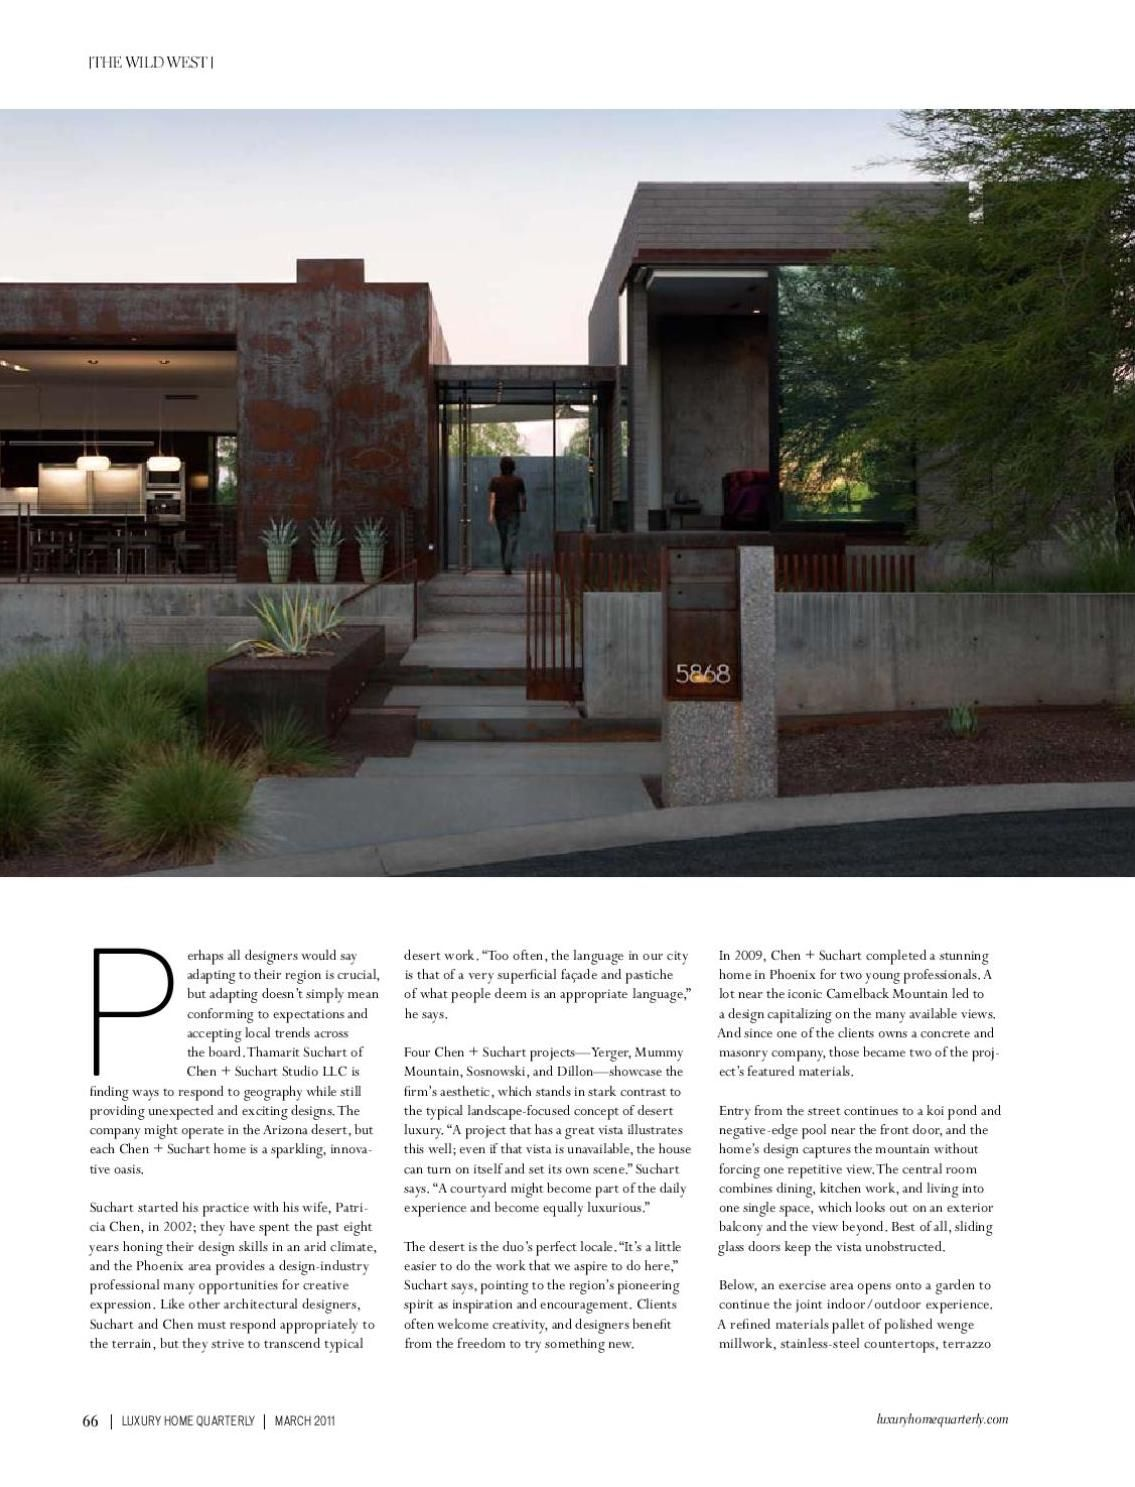 Luxury Home Quarterly Issue 7